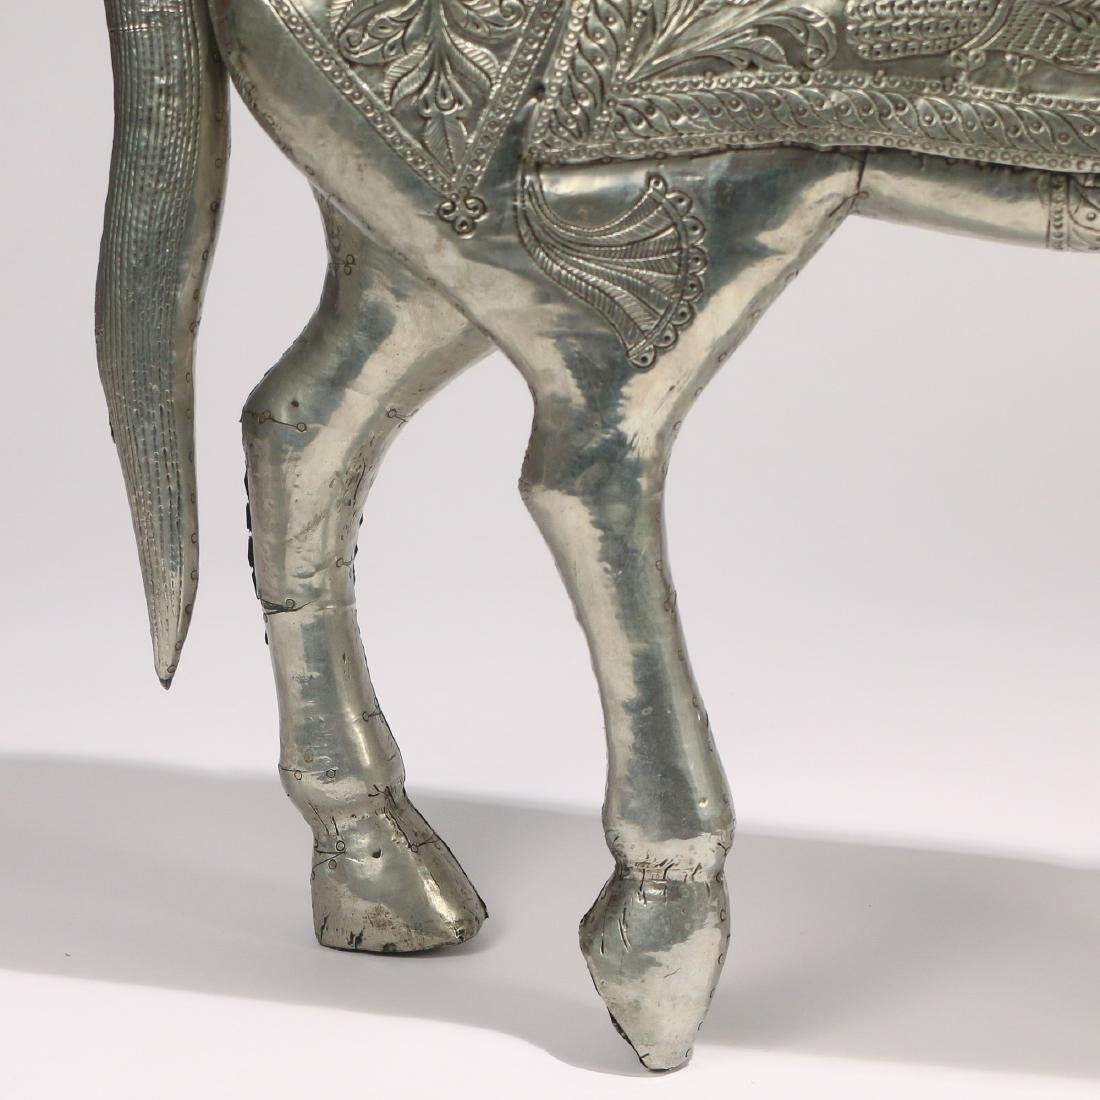 DAMASCUS SILVER FIGURE OF A HORSE - 7